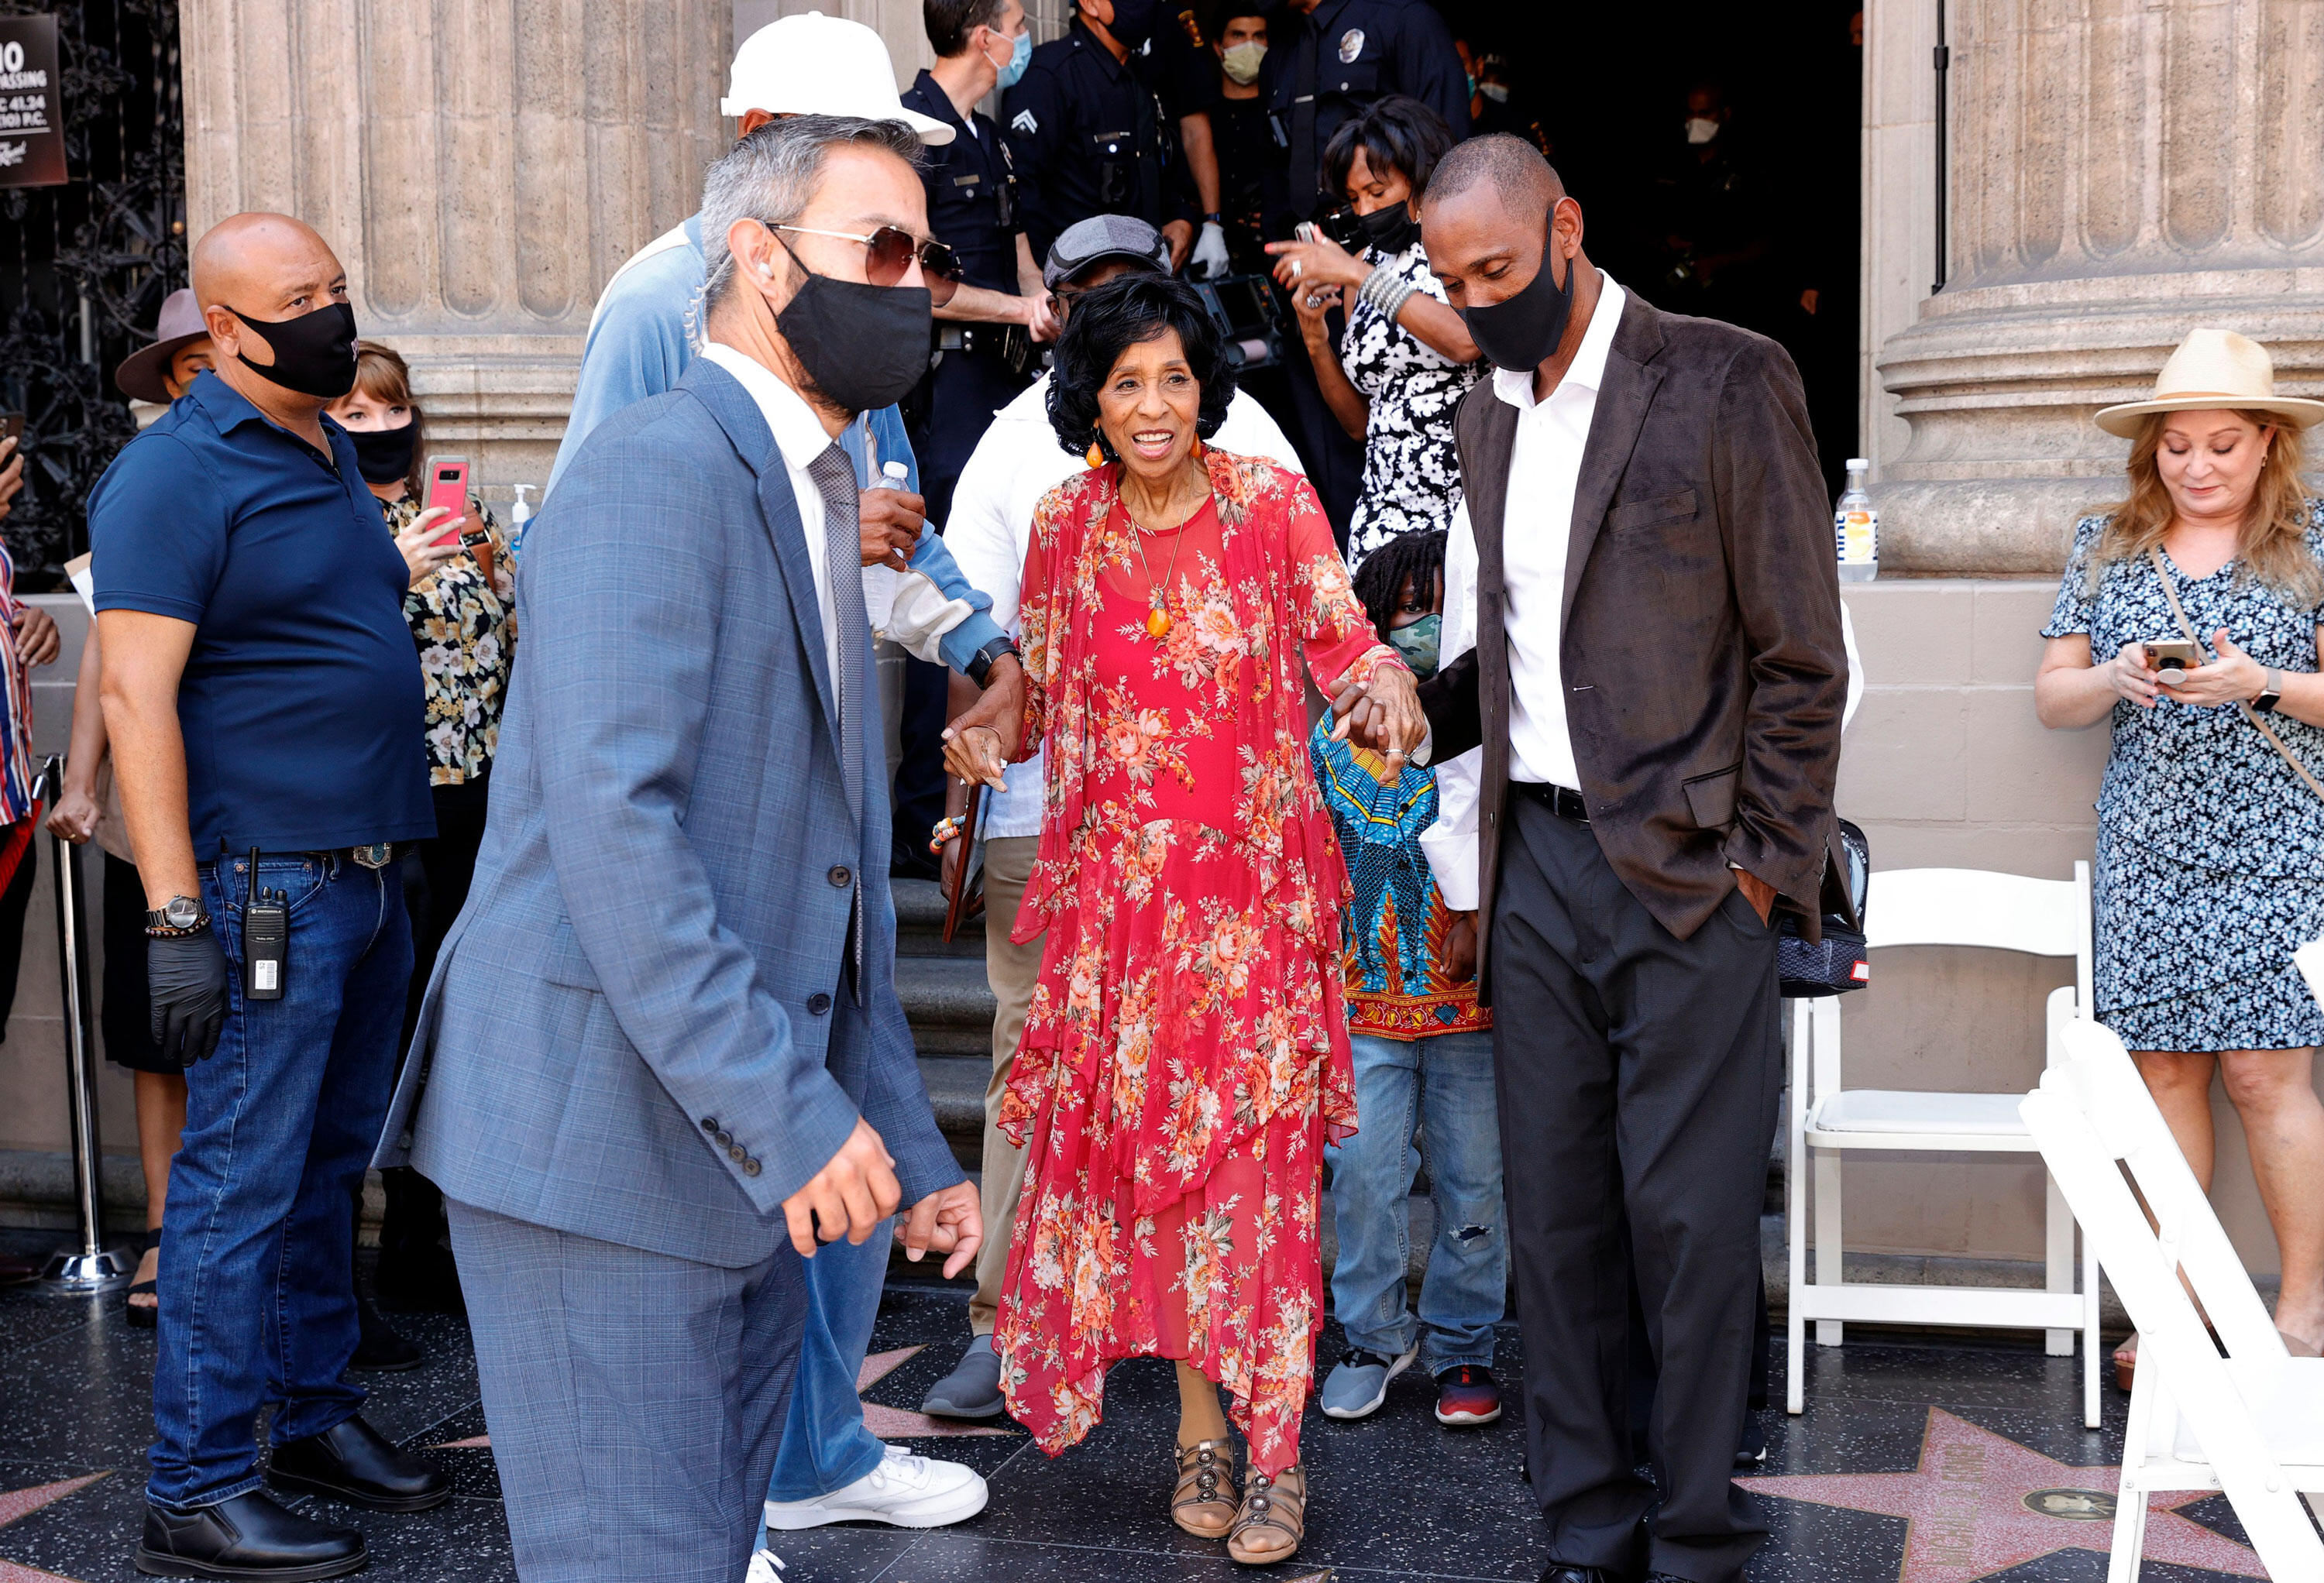 Marla Gibbs' scary moment at her Hollywood Walk of Fame unveiling